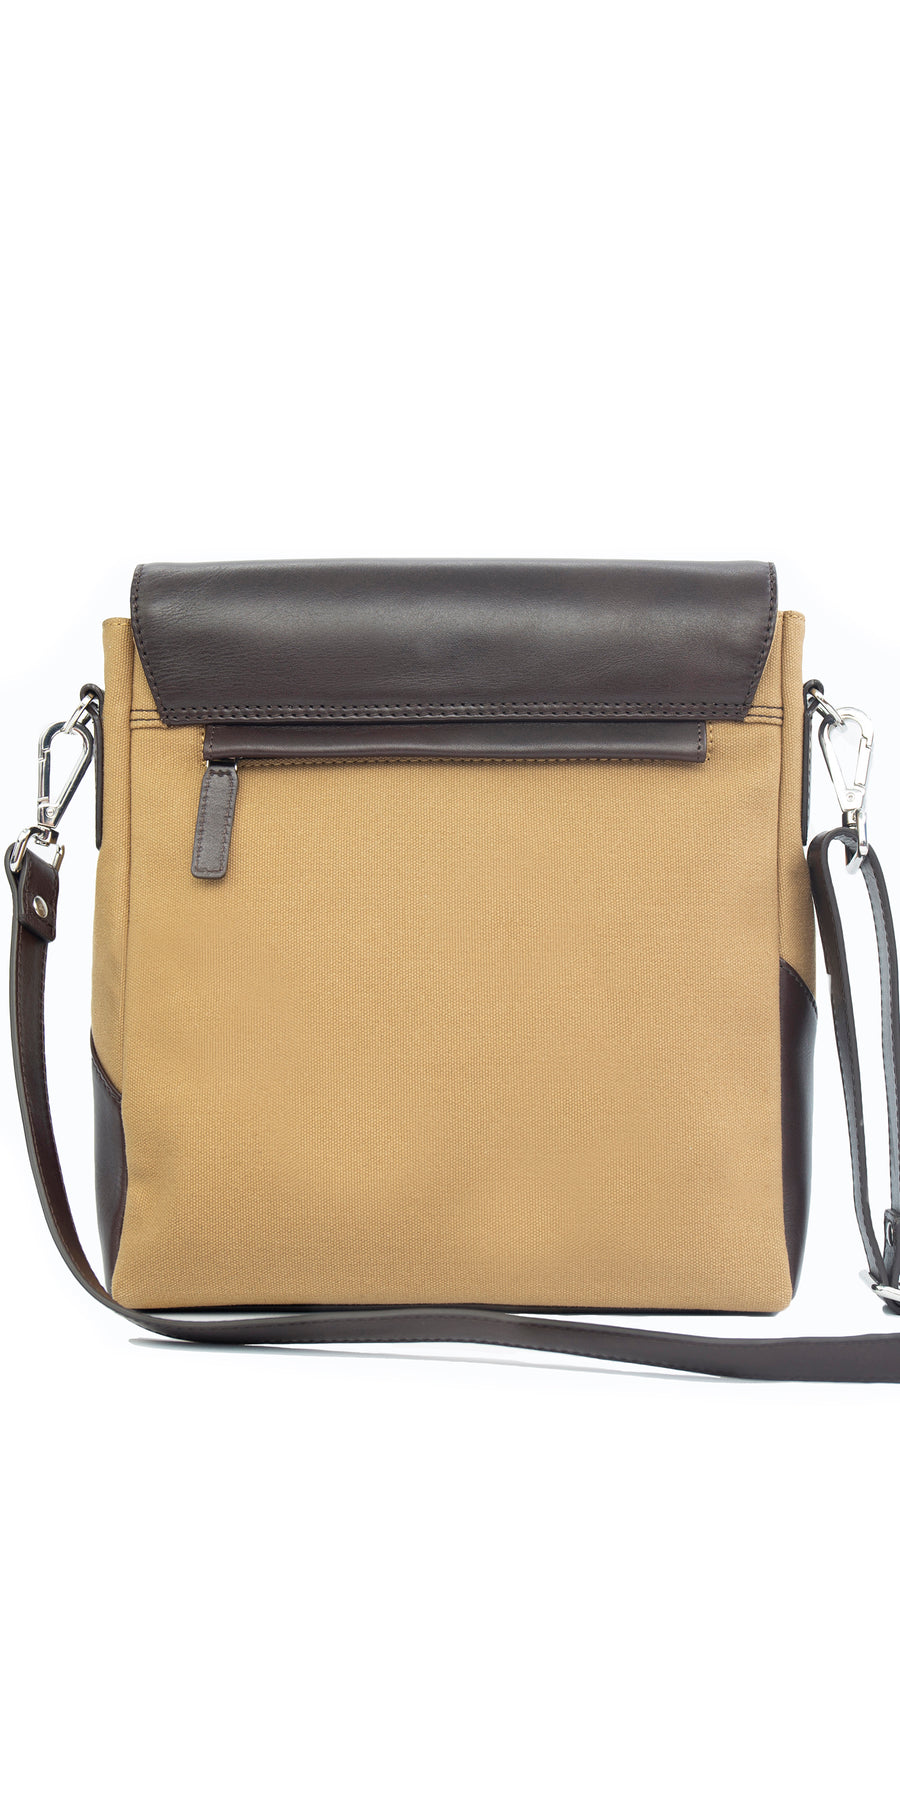 Moraltive Shoulder Bags - Khakhi & Brown